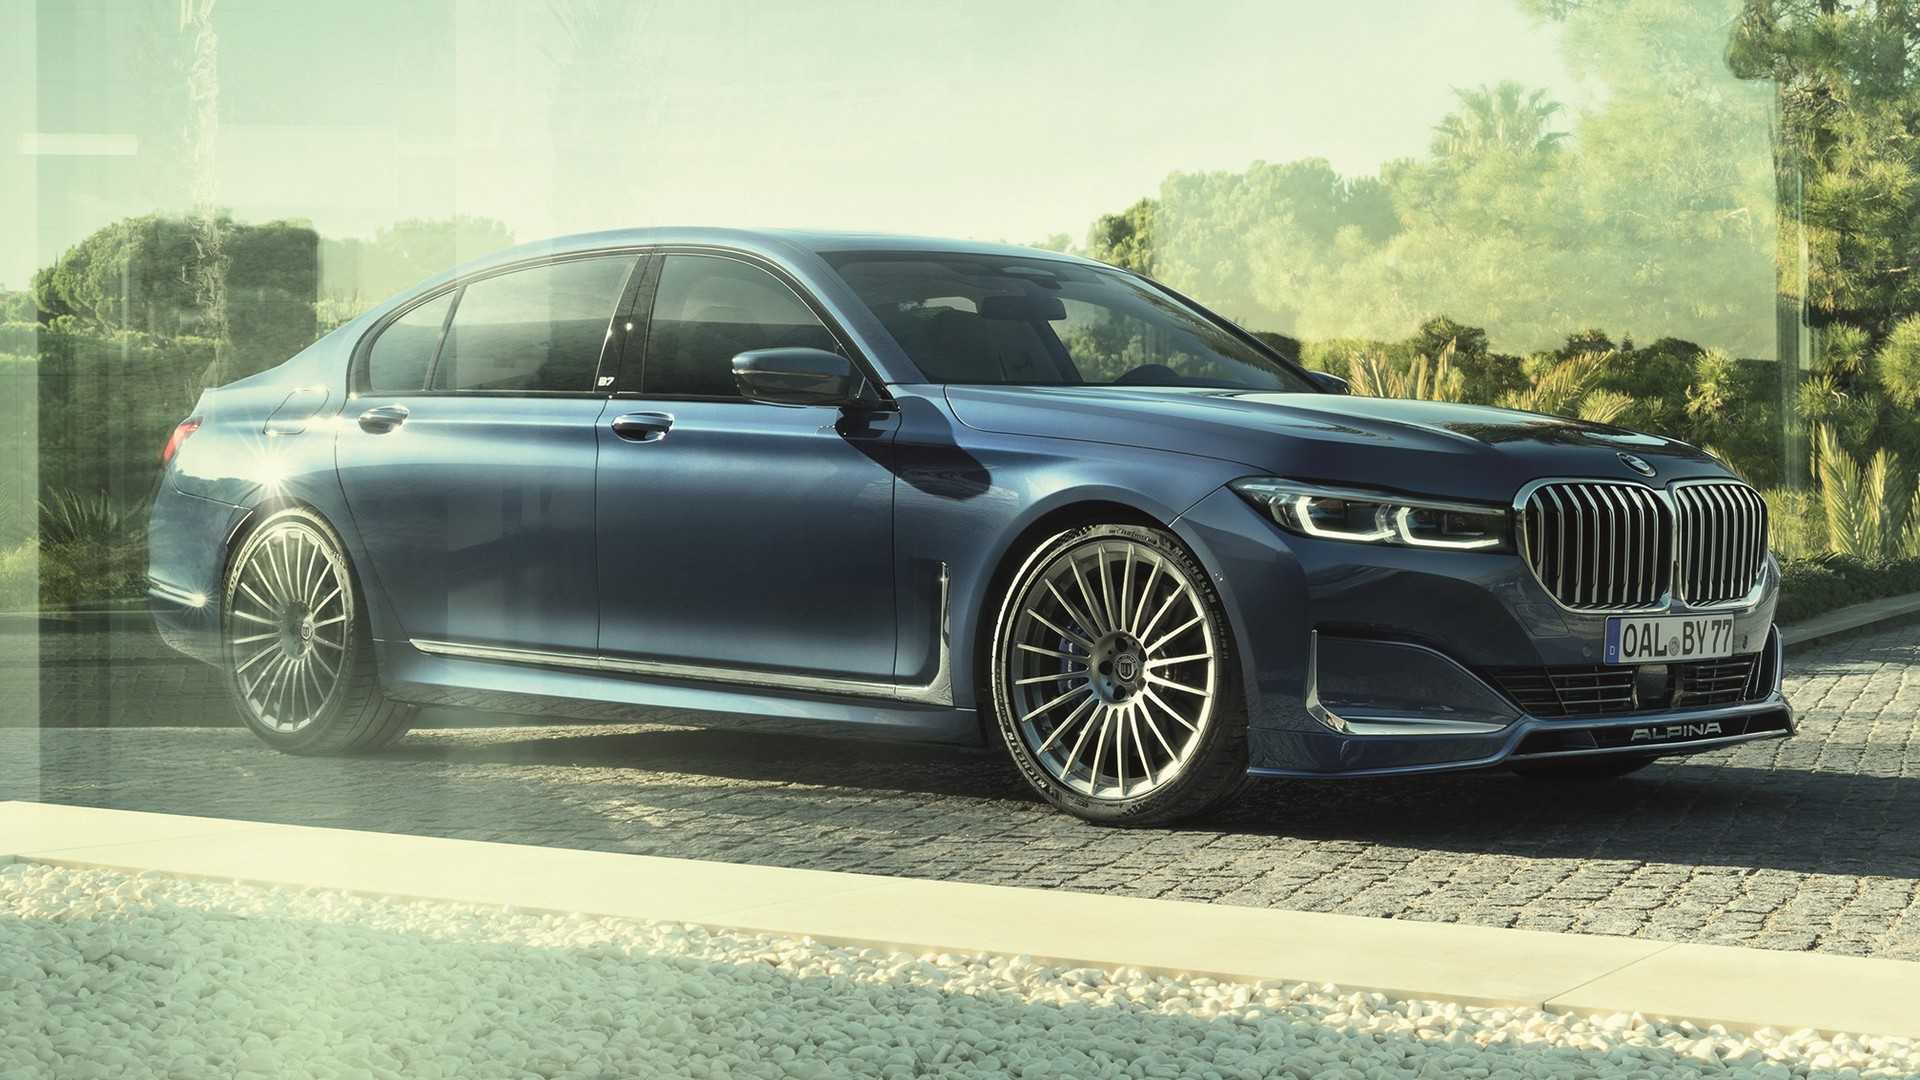 Alpina, a dedicated BMW tuner, has come out with a facelifted version of its custom B7 sedan built with the BMW 7 Series at its core